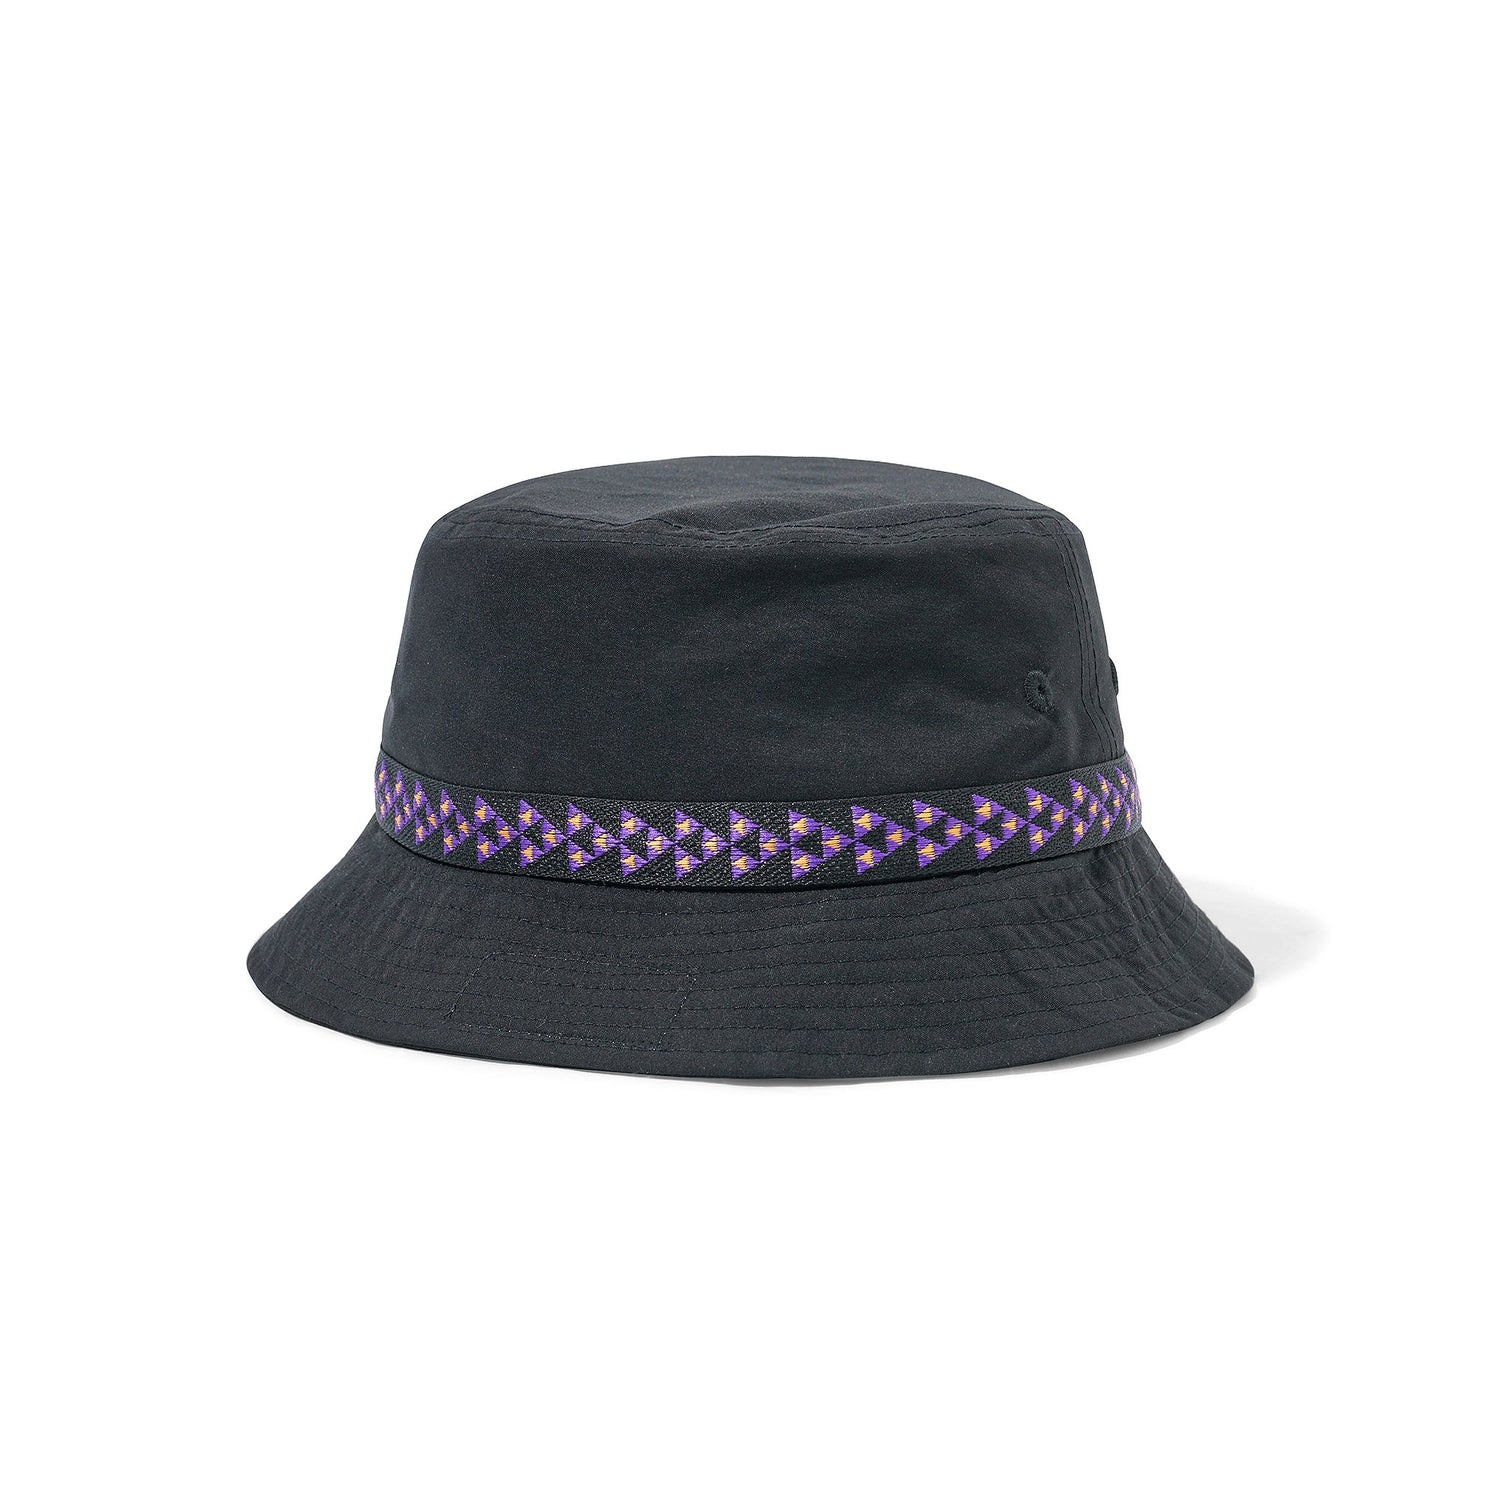 Equipment Bucket Hat, Black